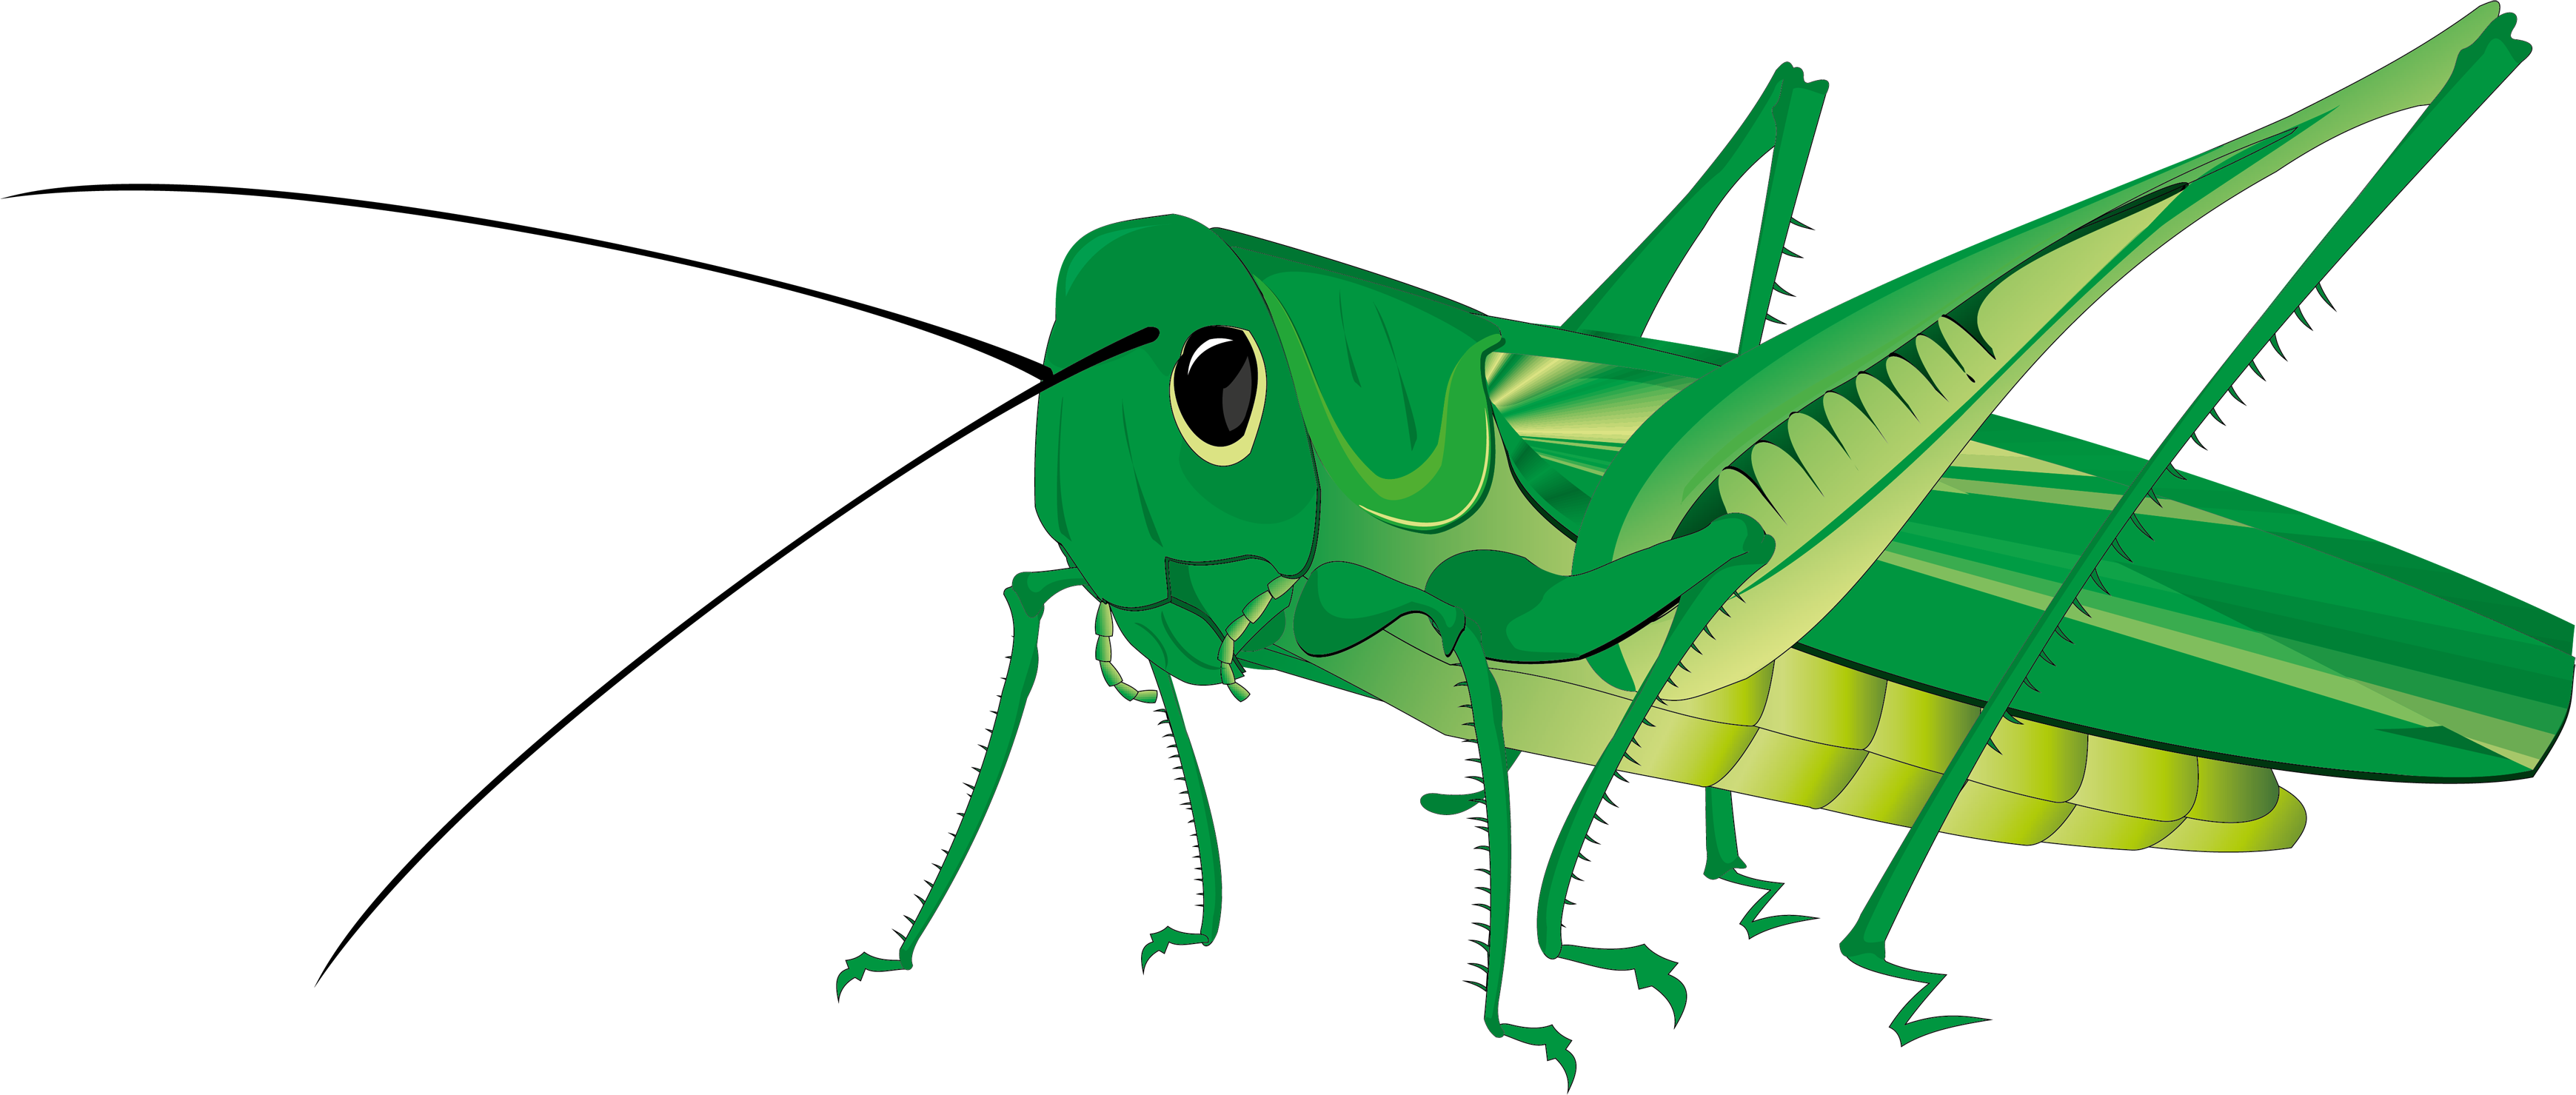 Grasshoppers clipart clip art freeuse stock Grasshopper PNG images free download clip art freeuse stock